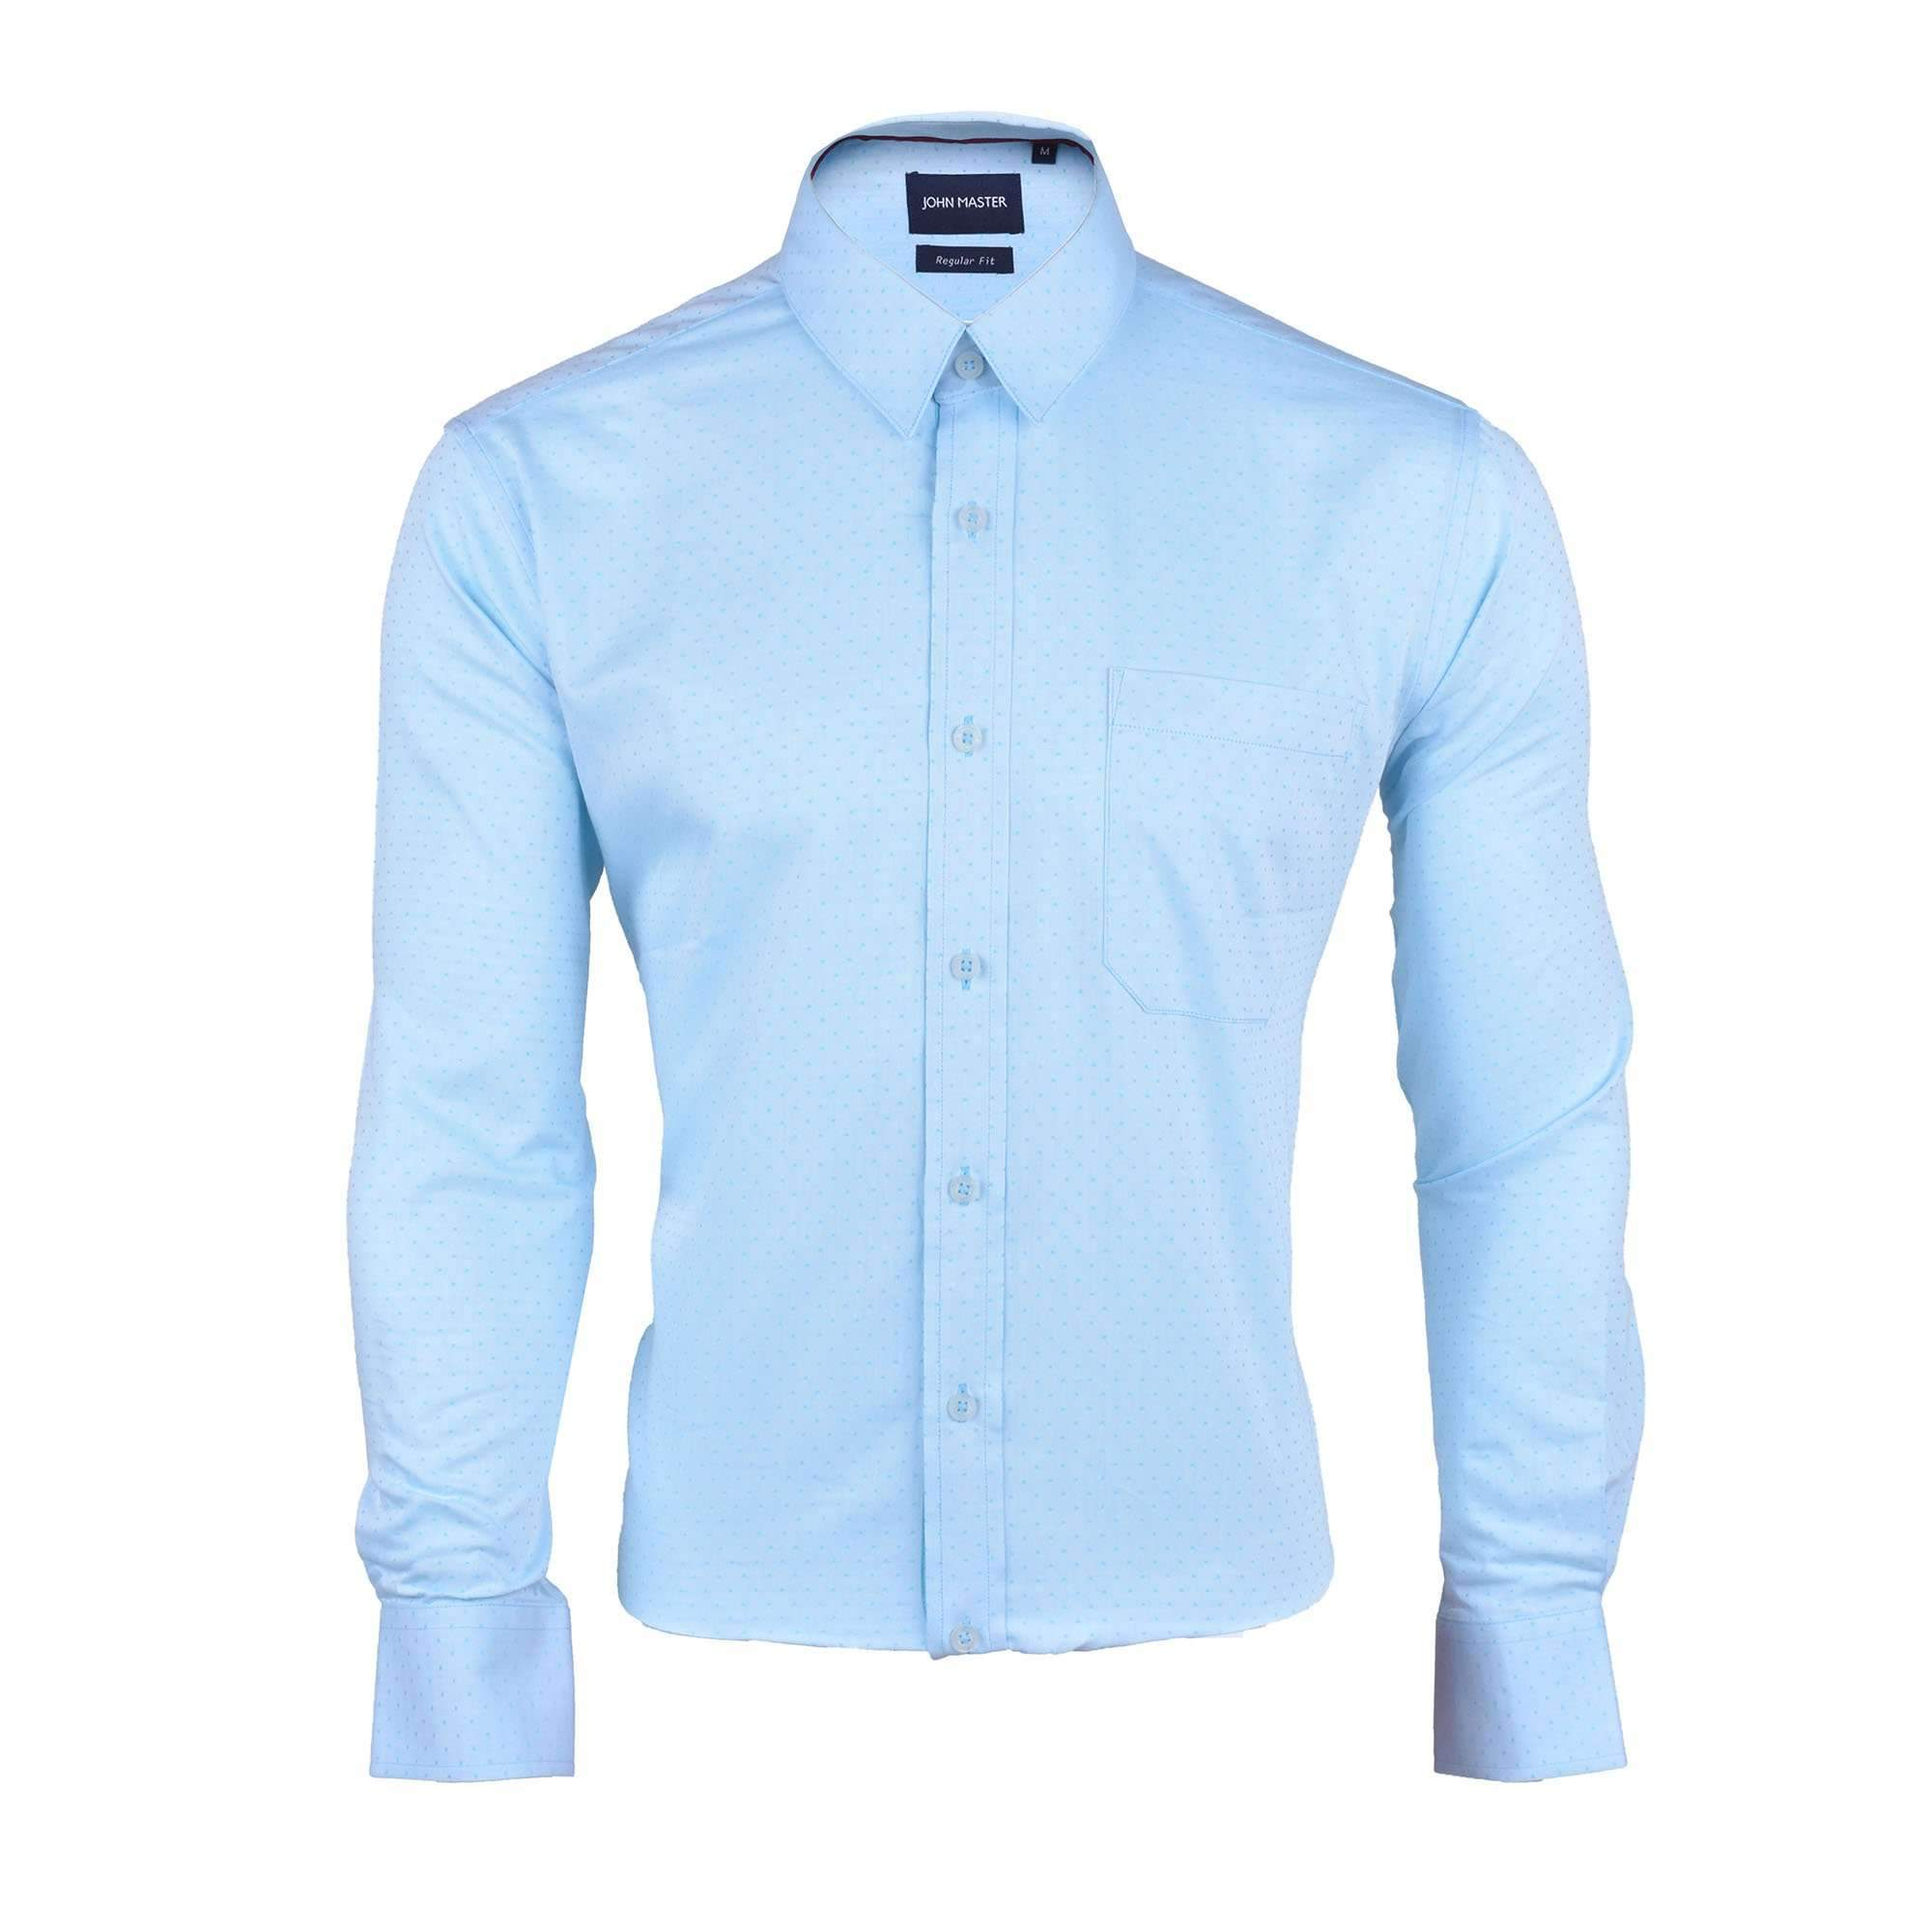 John Master Business Basic Shirt Long Sleeves Turquoise 7077005 : Buy John Master online at CMG.MY